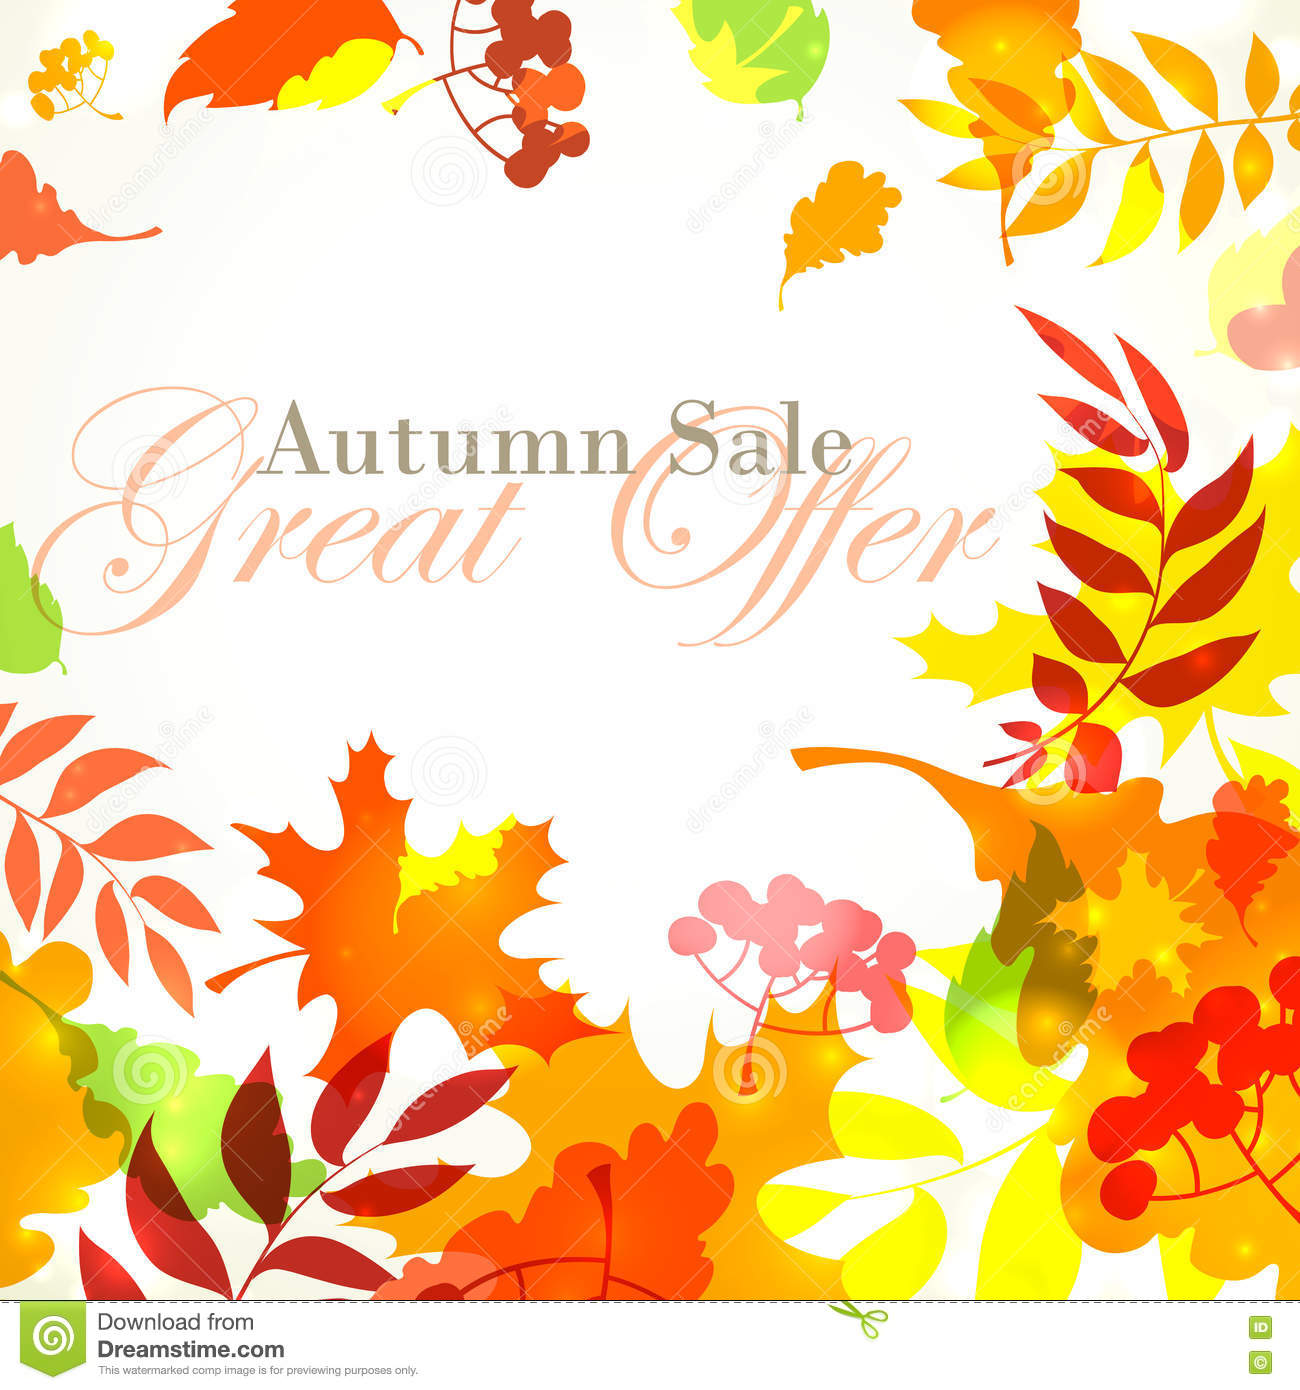 autumn sale template square frame with fall bright leaves oak